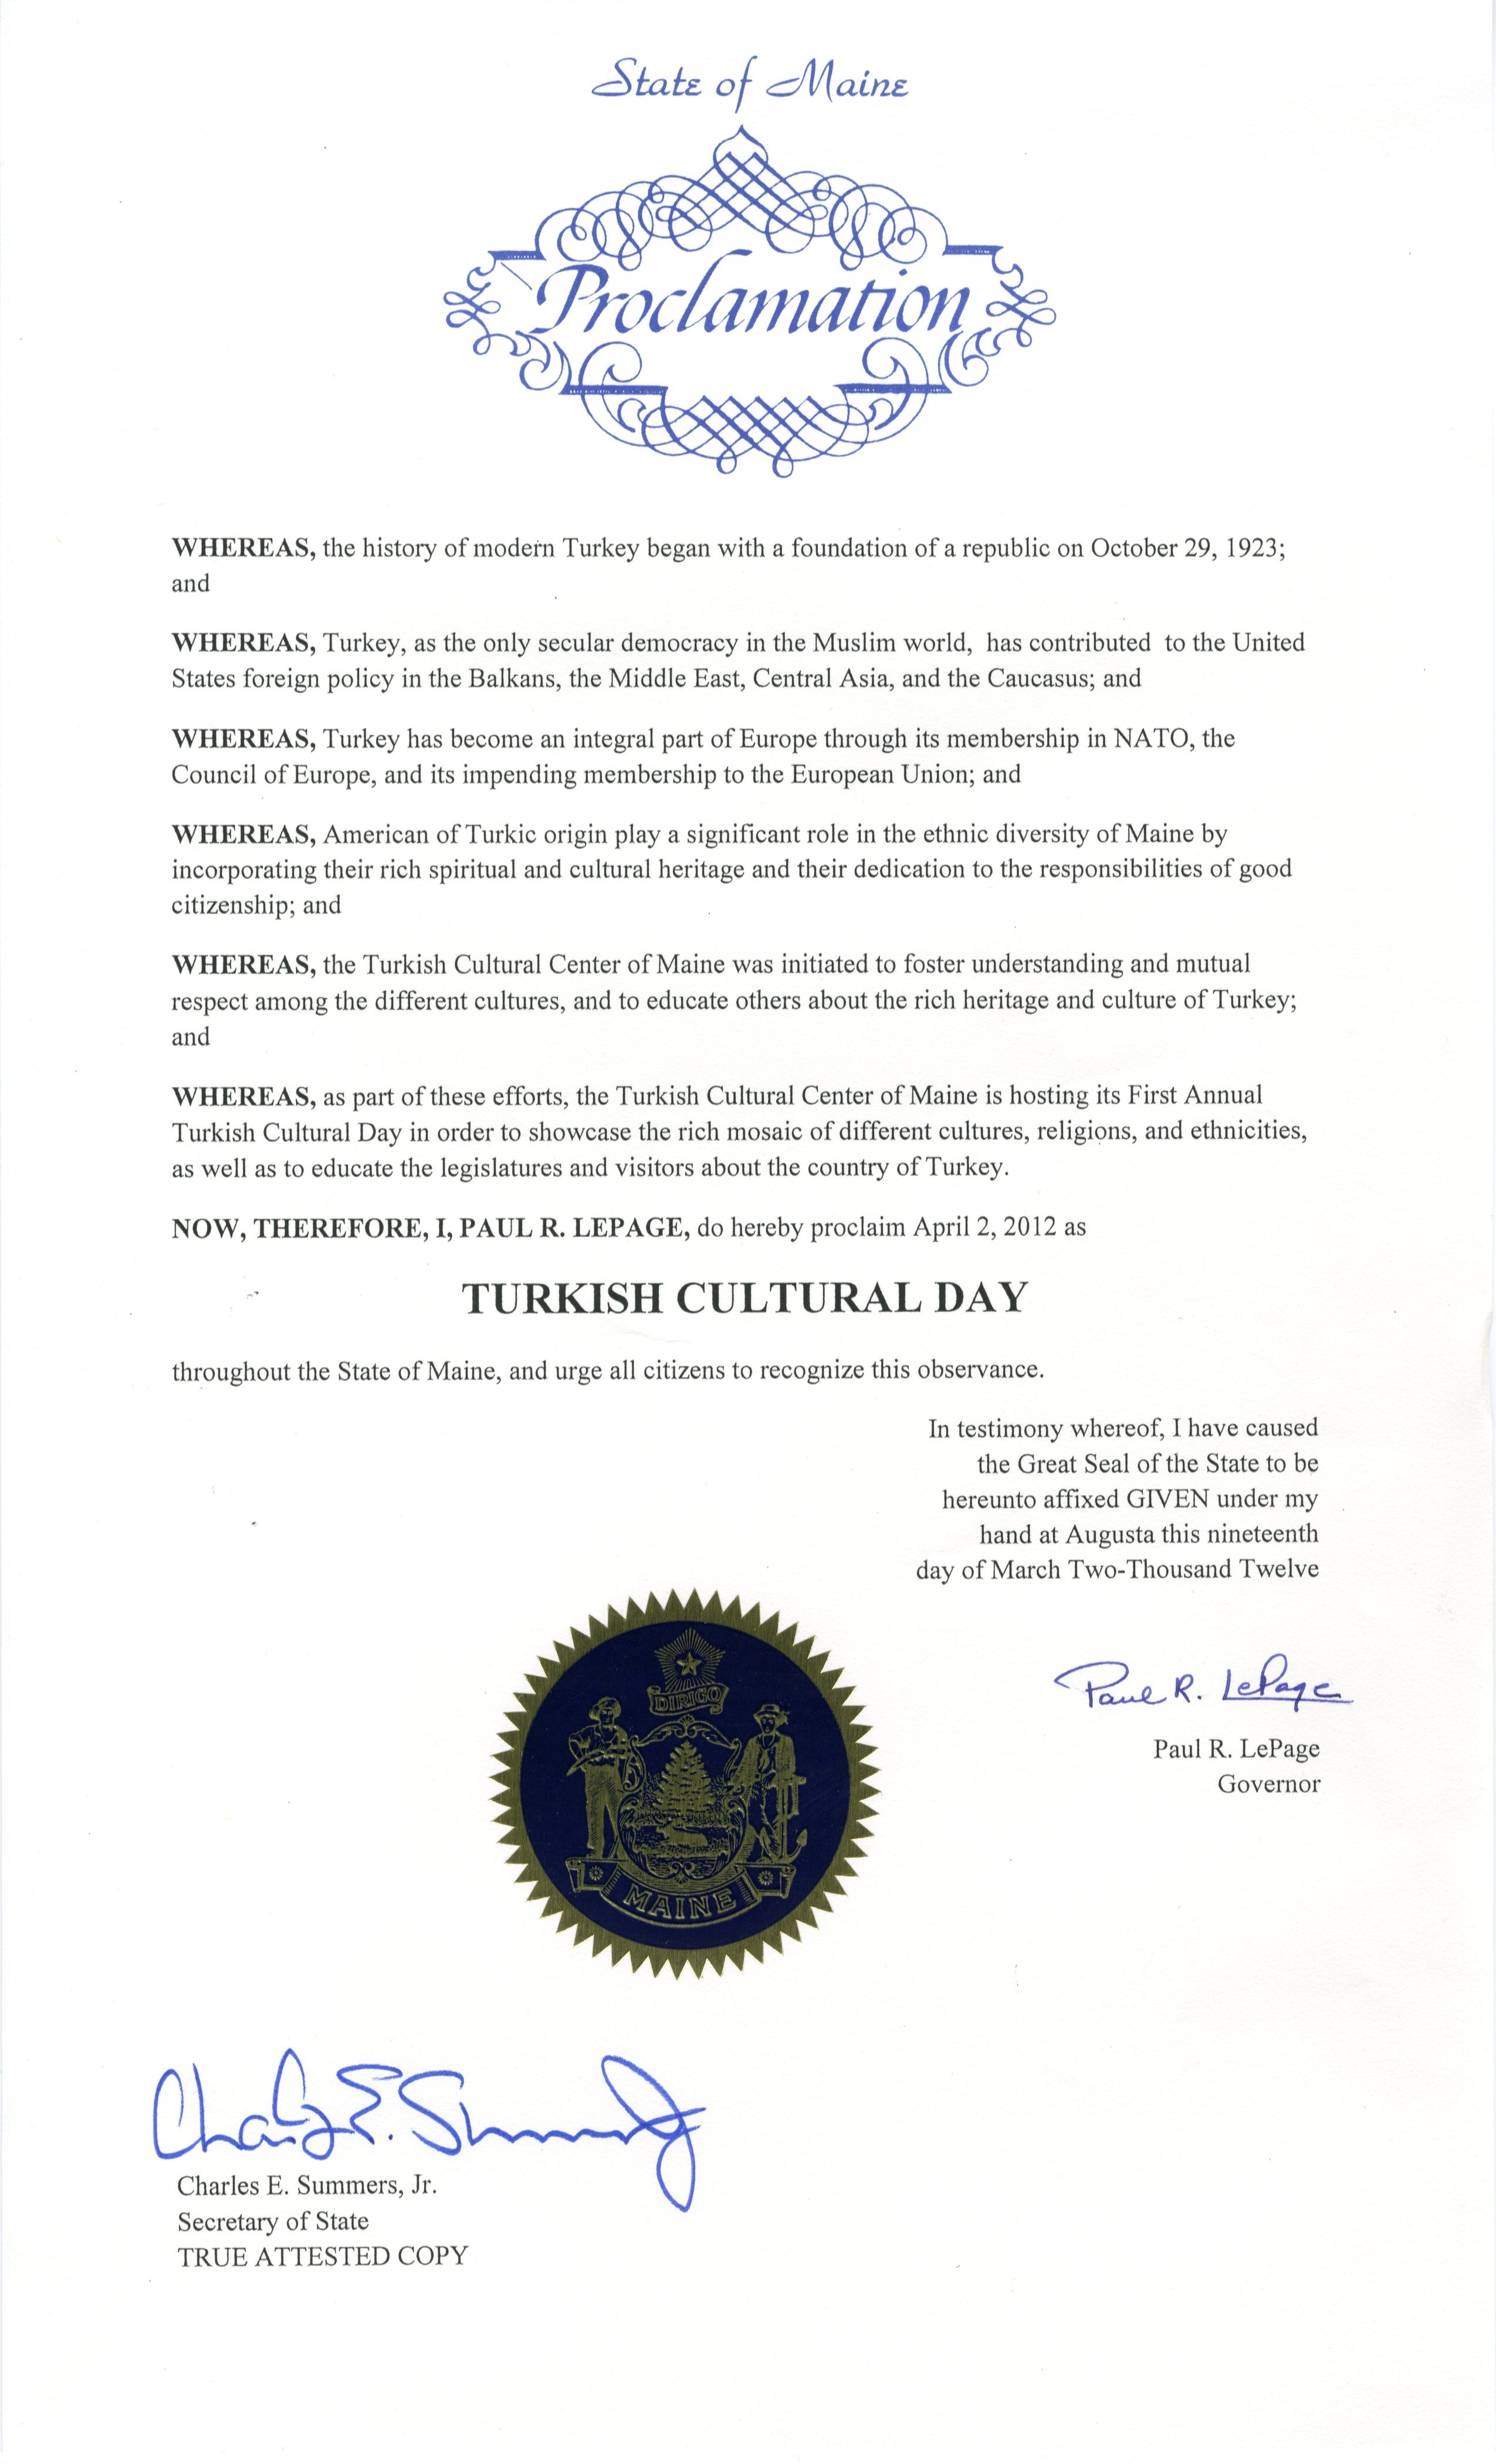 Proclamation by Governor Paul LePage - Turkish Cultural Day - April 2, 2012